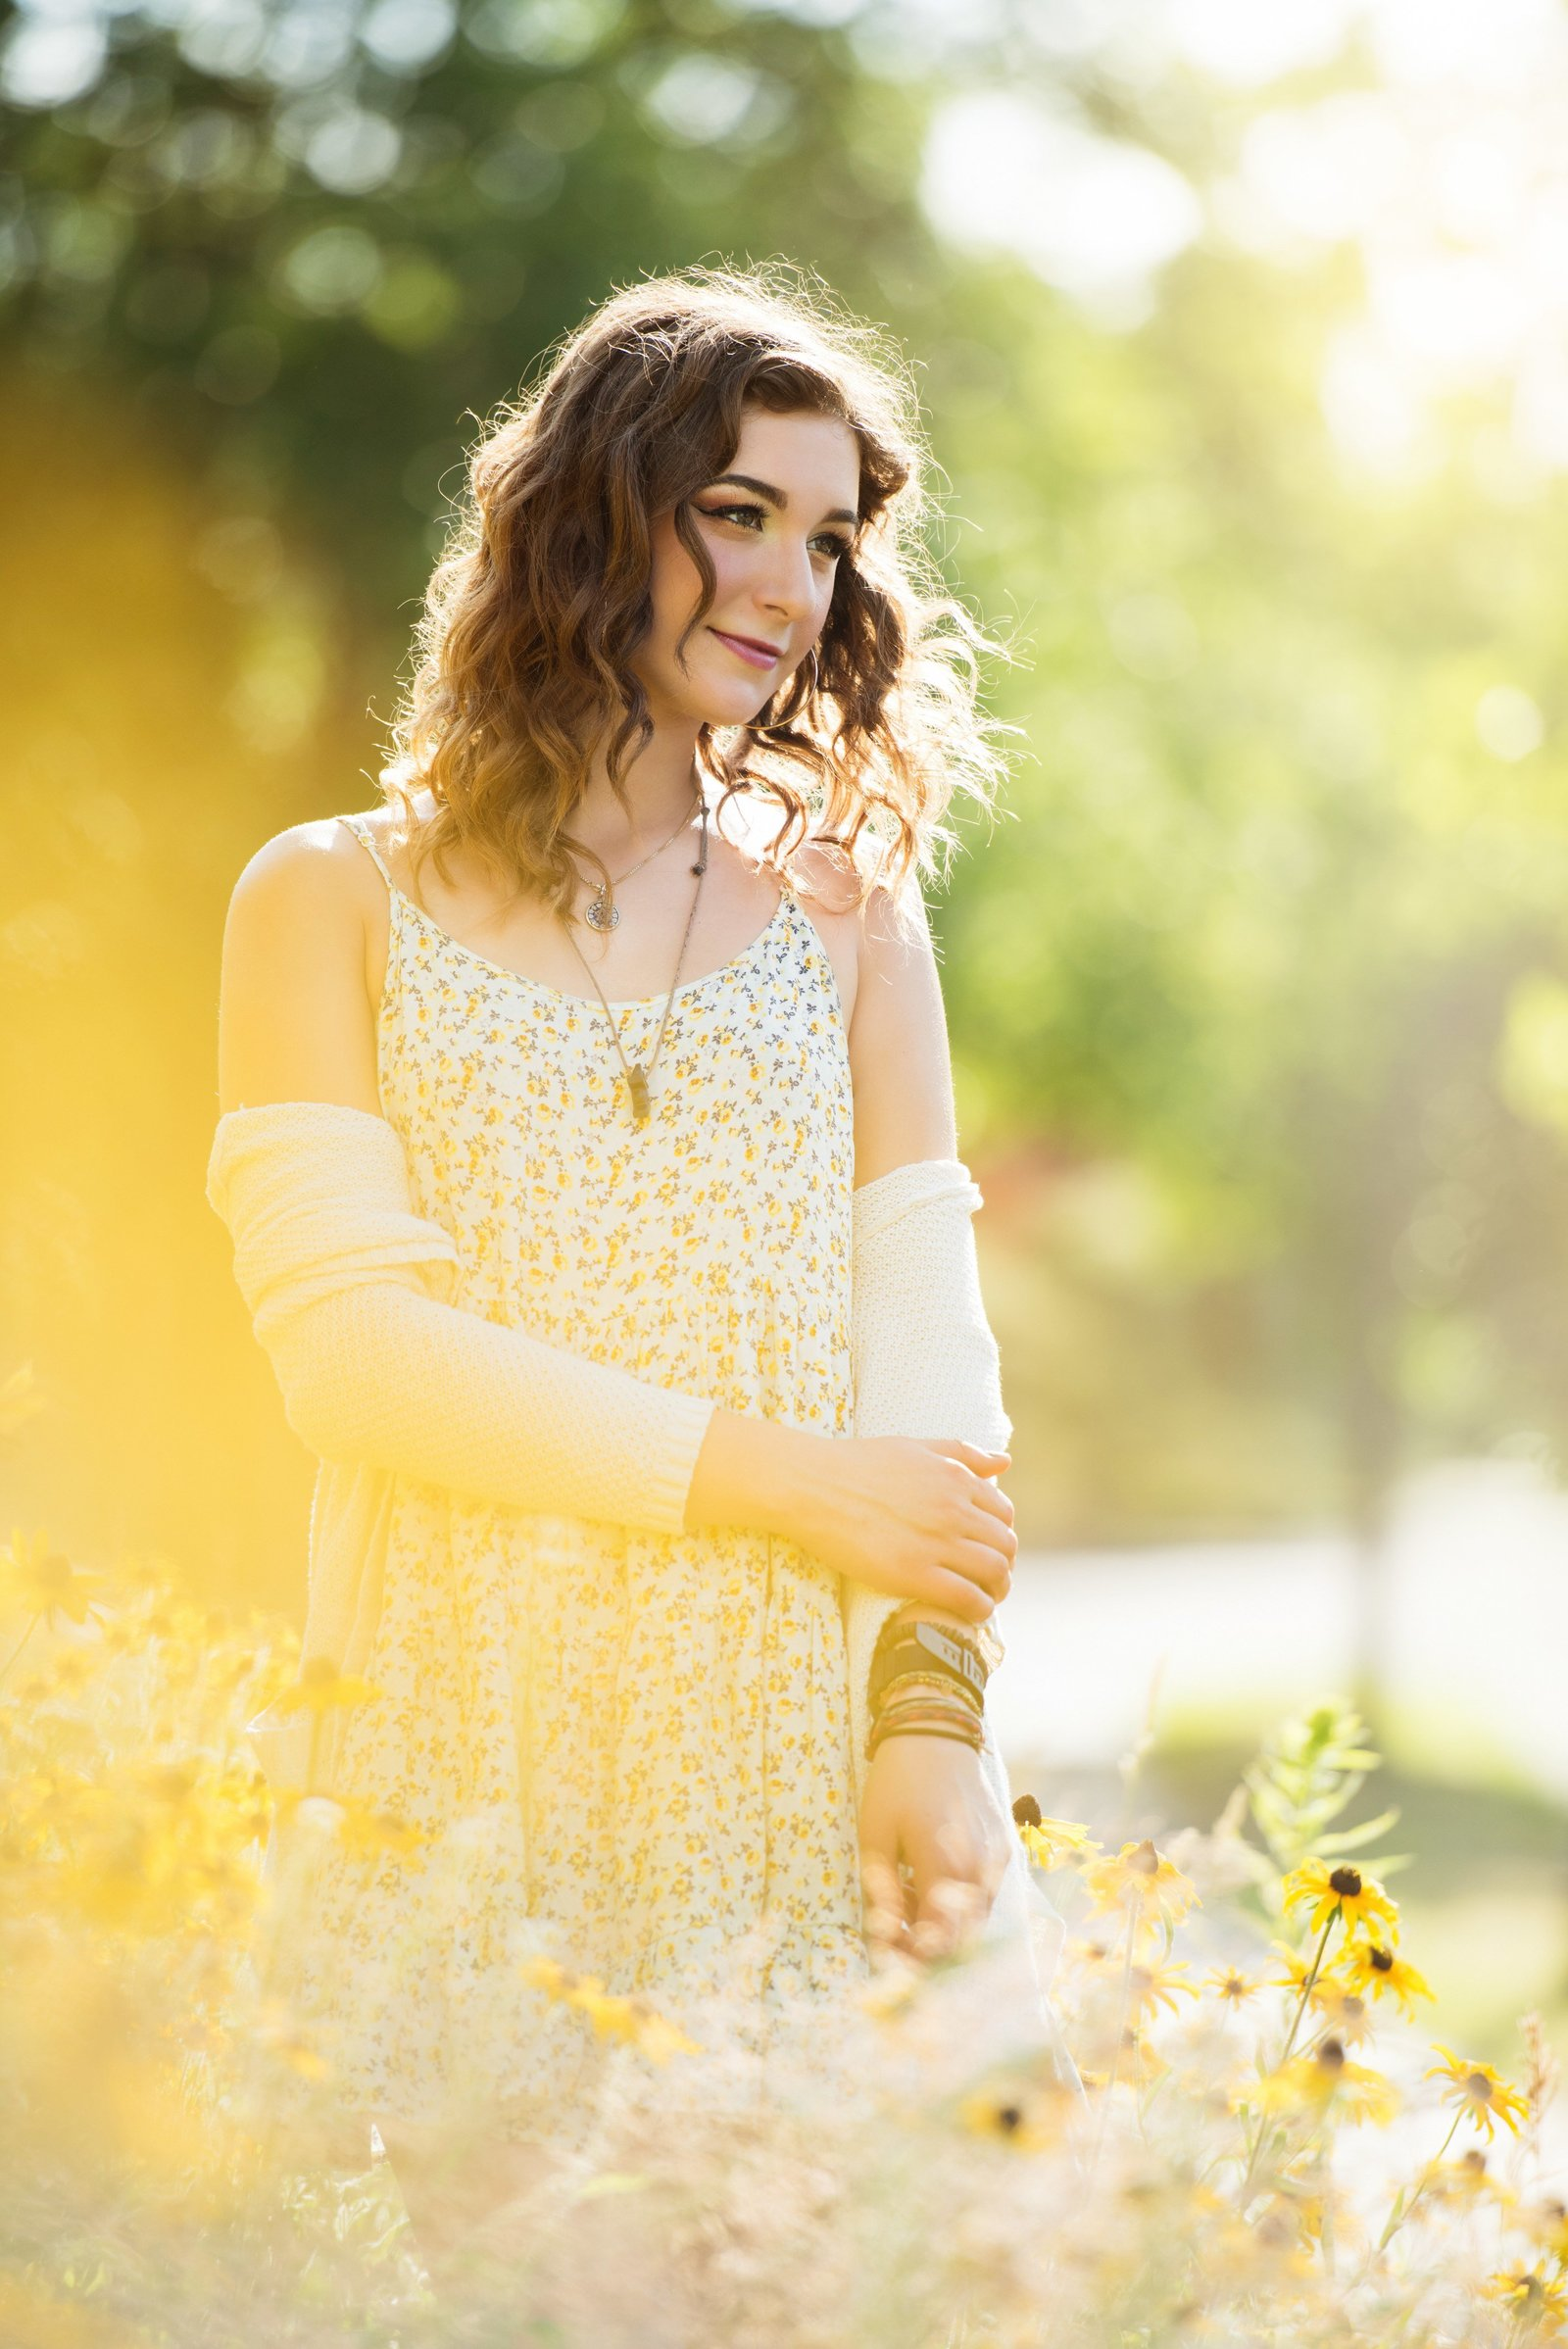 Glowing light senior picture of girl with curly hair and wildflowers